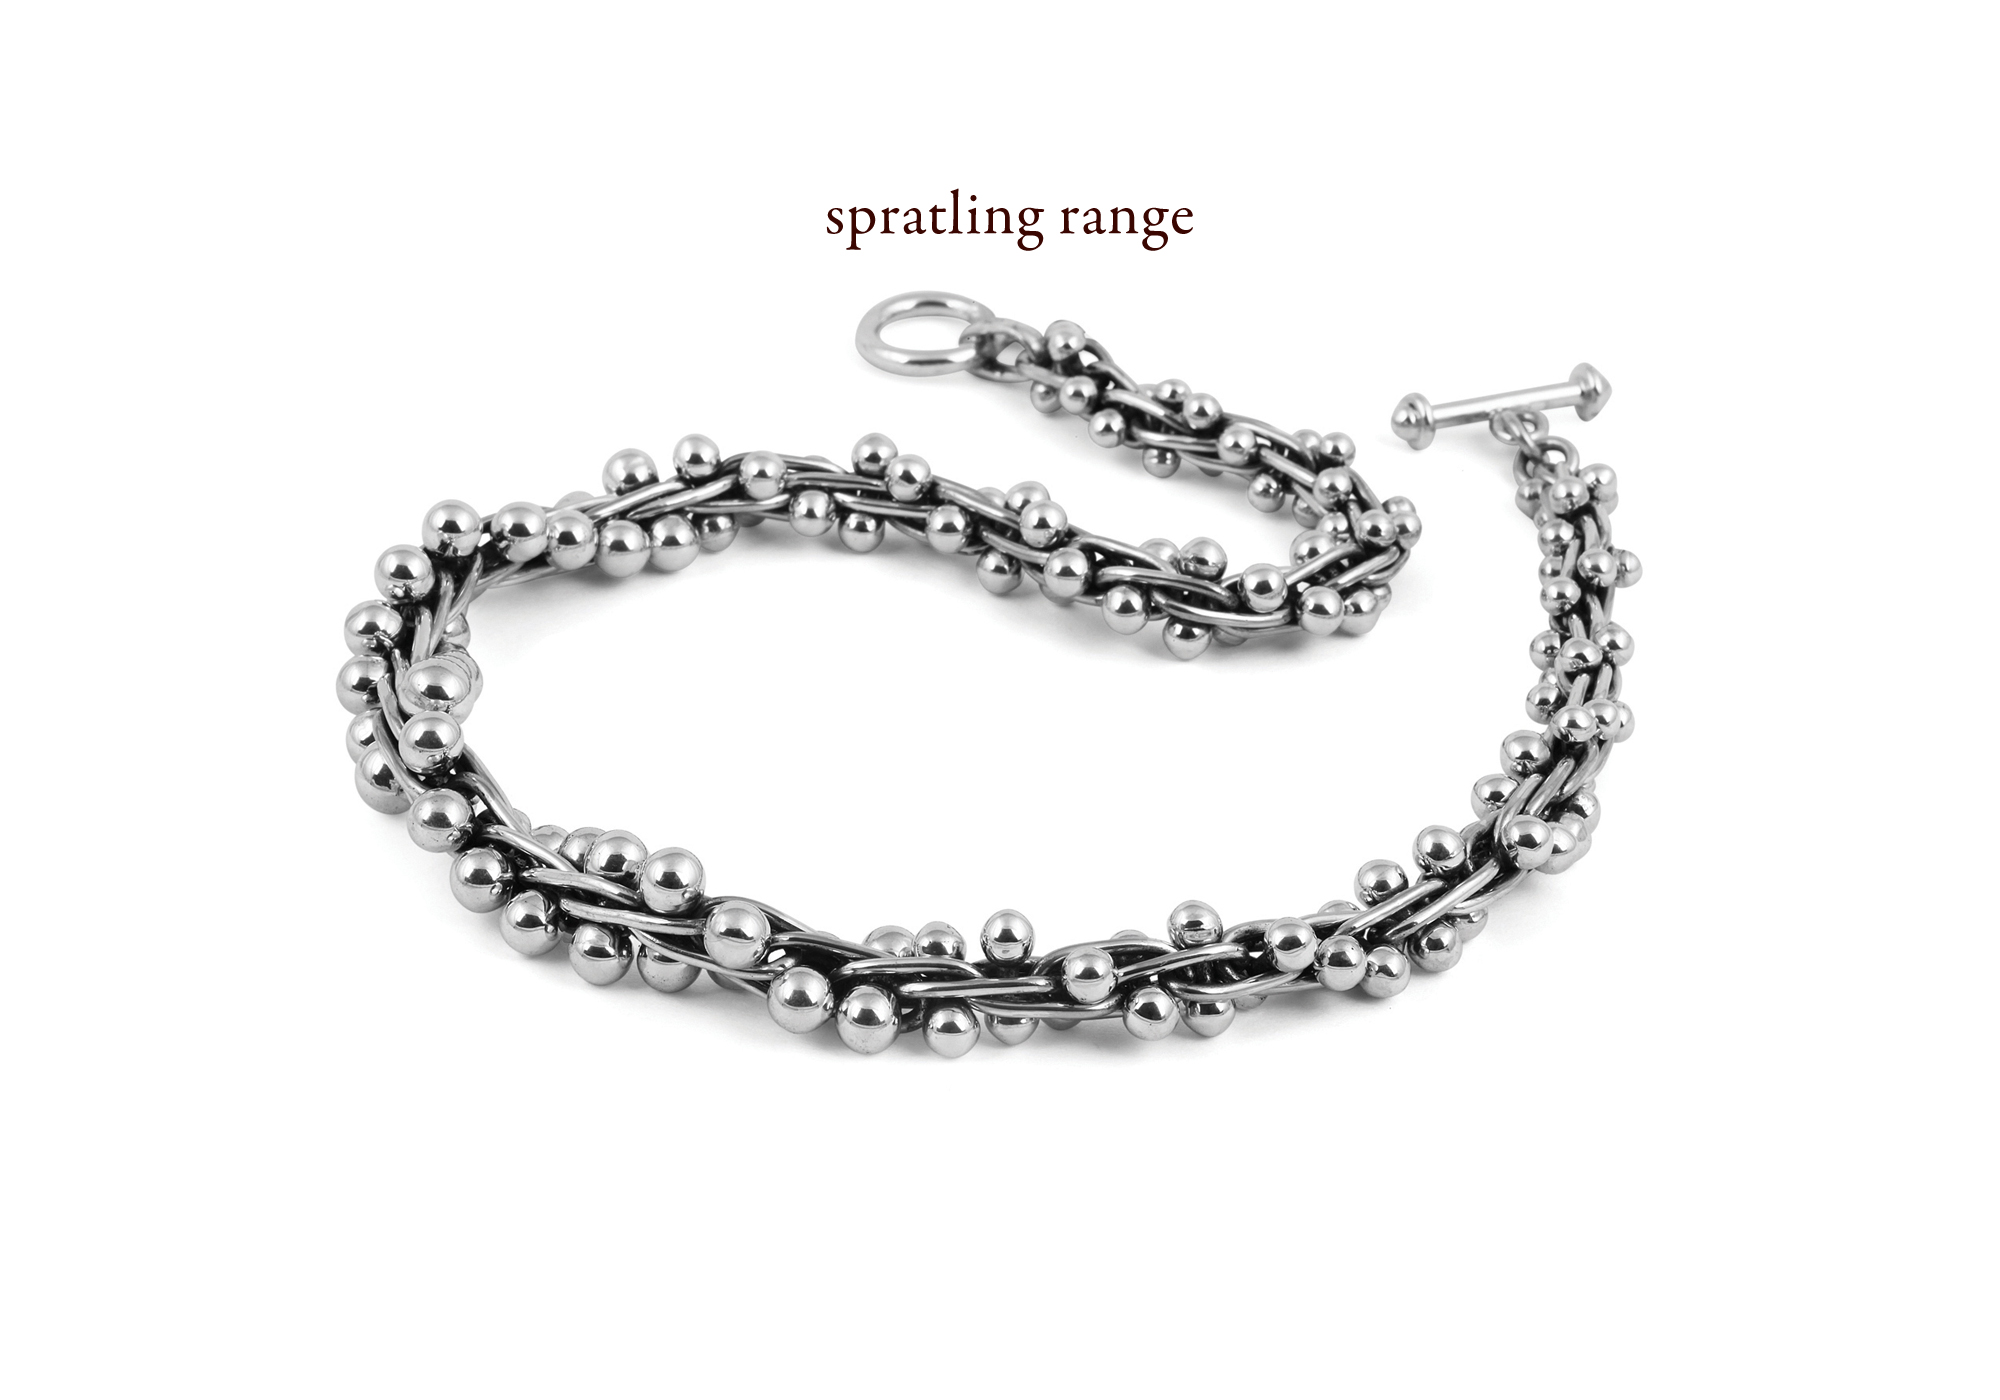 Spratling Range_graduated_knecklace_4mm beads_silver_coleman_coleman_jewellery_Wantage_Oxfordshire